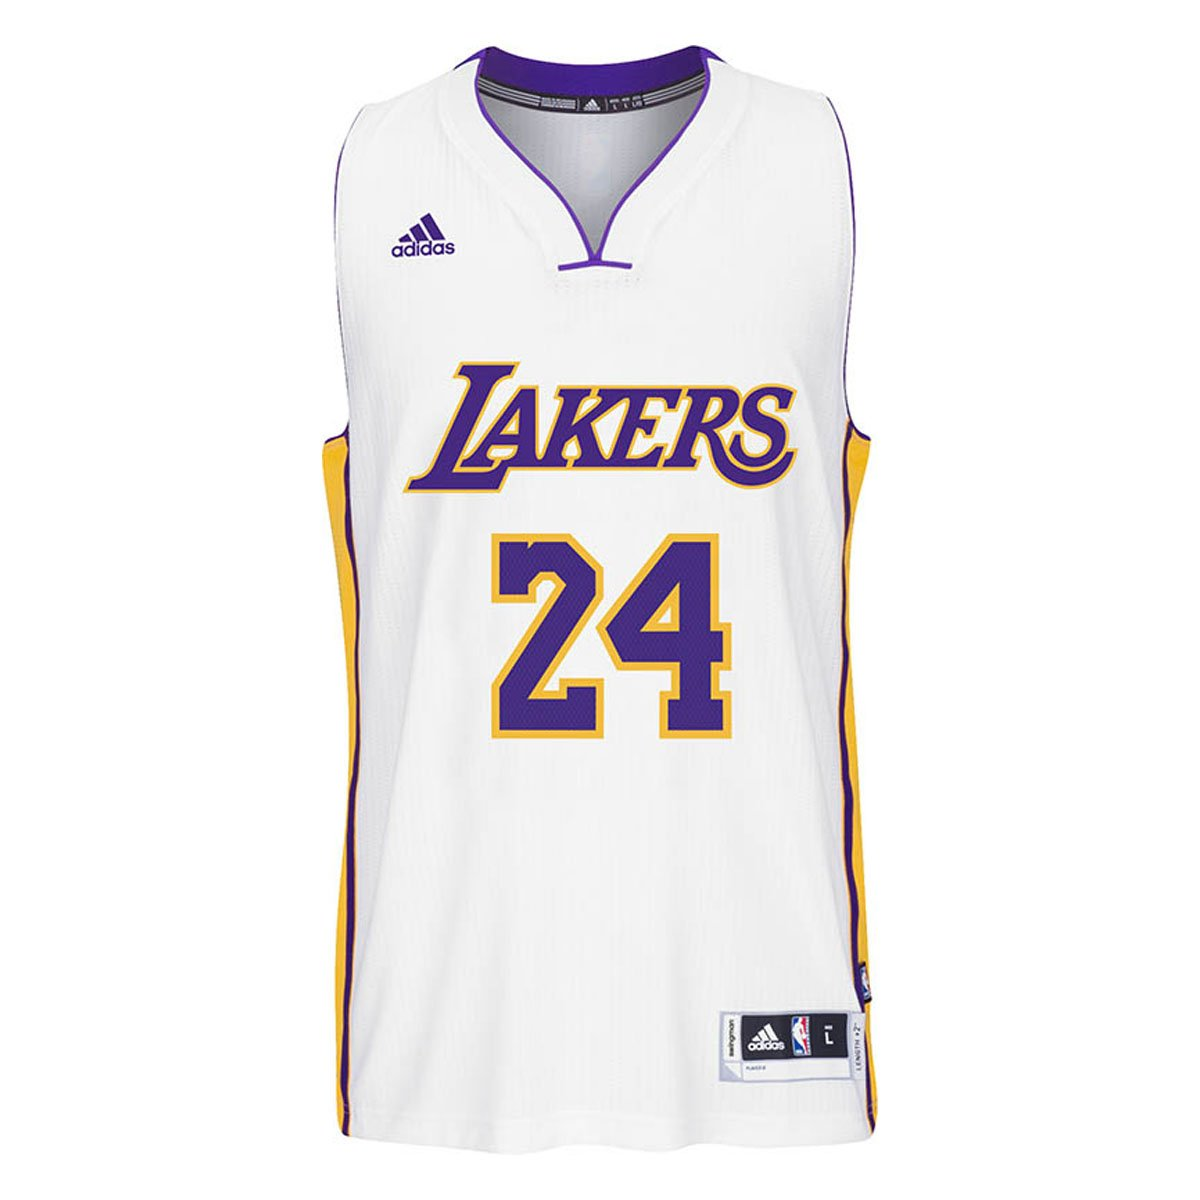 Amazon.com: ADIDAS NBA Los Angeles Lakers Kobe - Camiseta ...